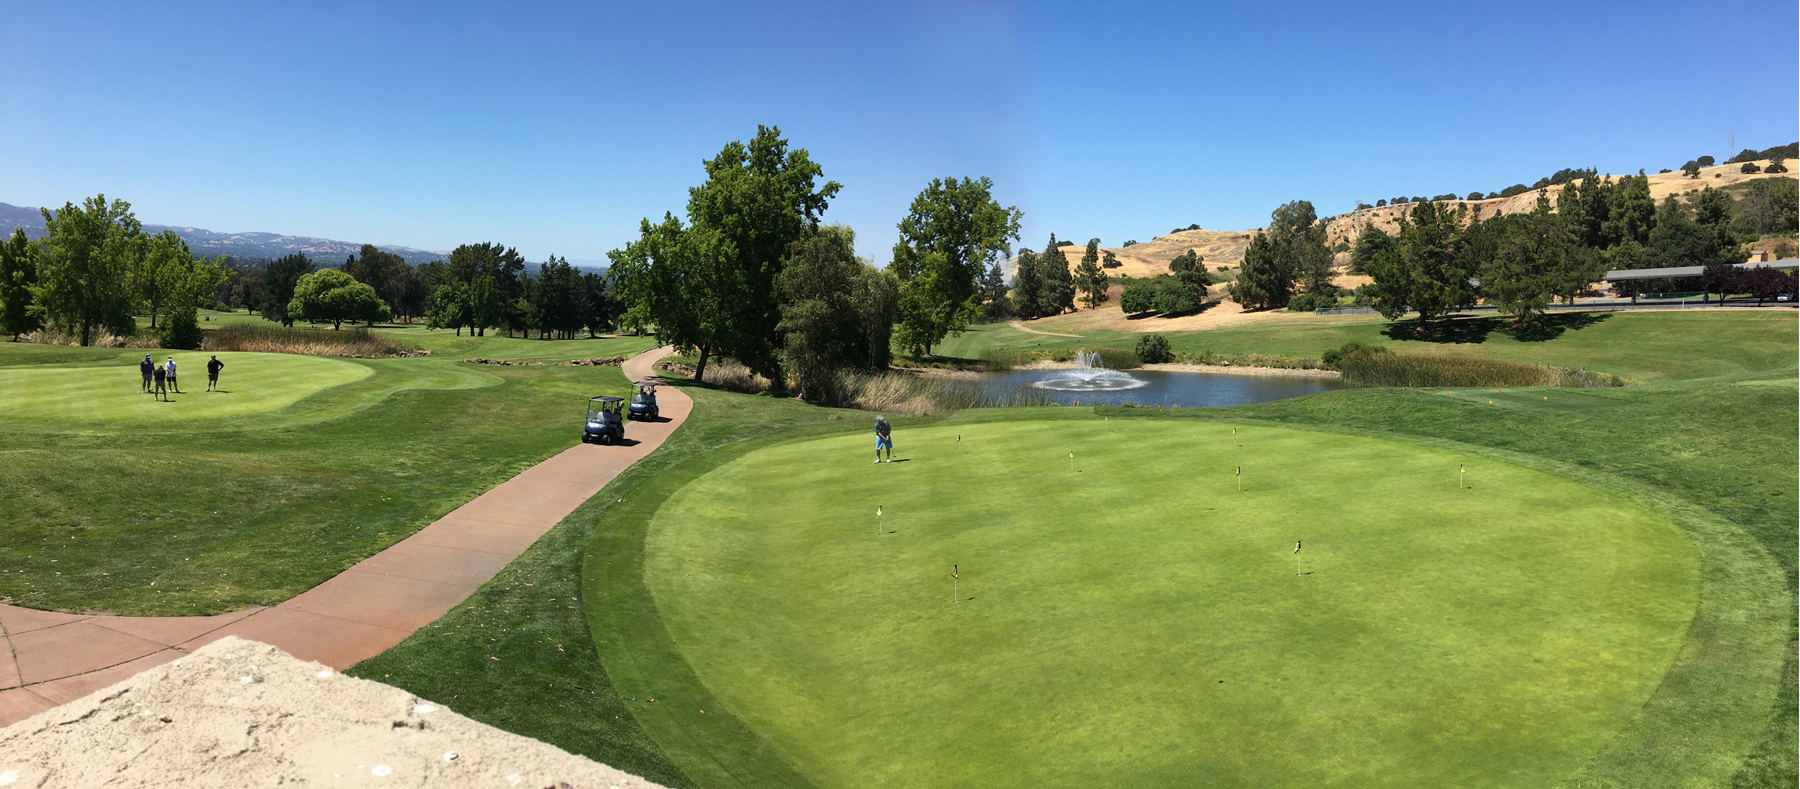 Golf-Course-PANO.jpg